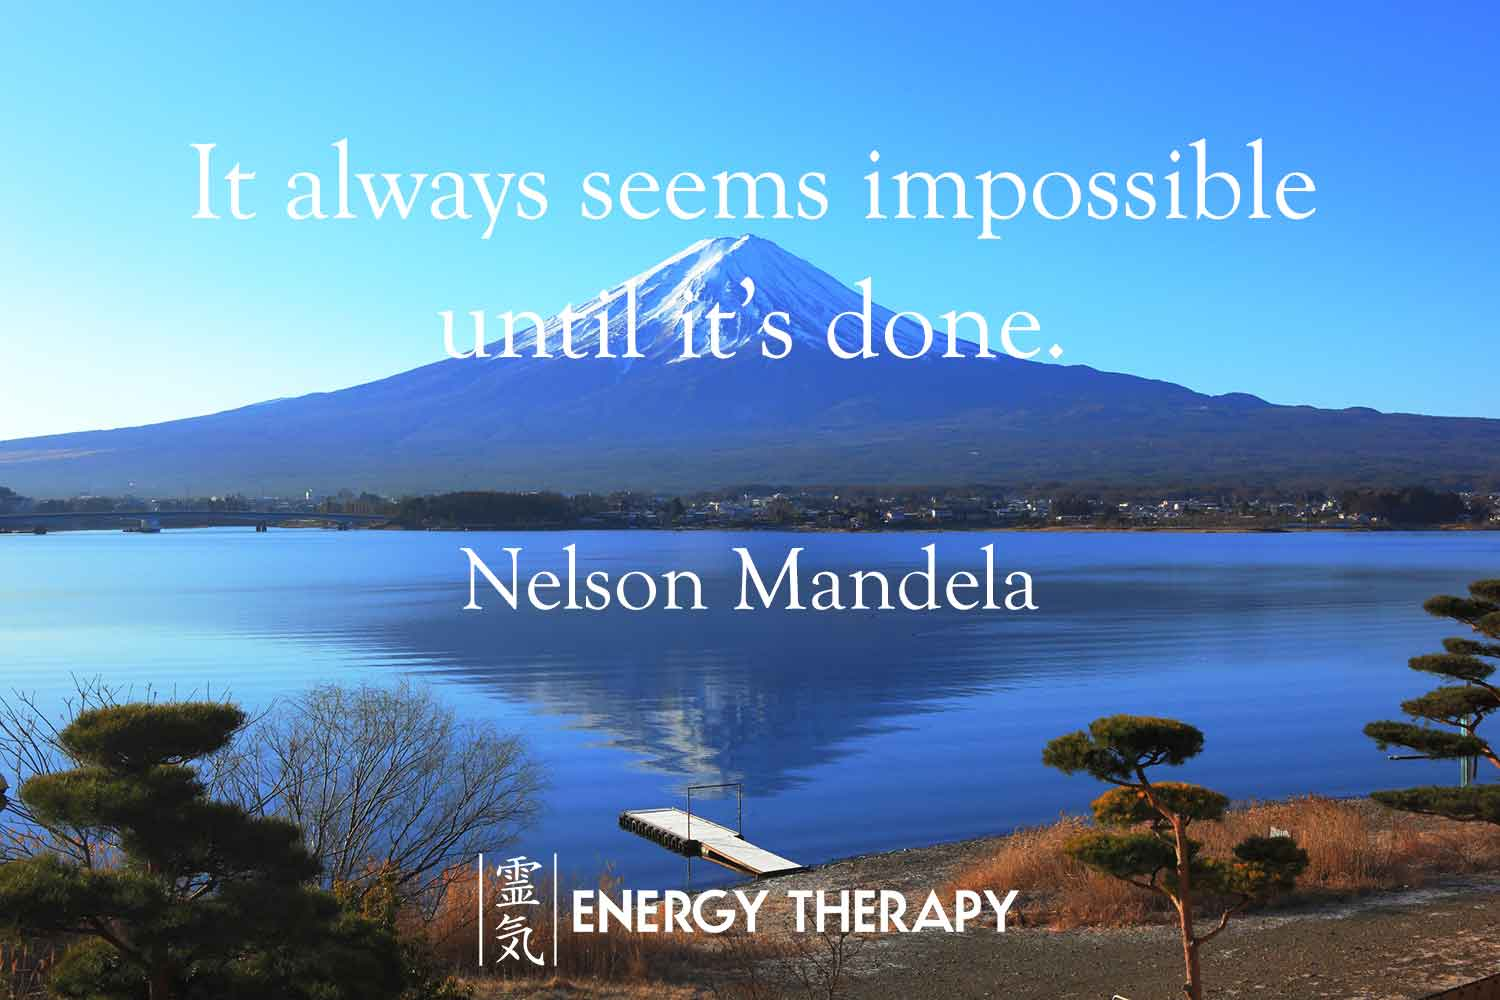 nelson mandela - it always seems impossible